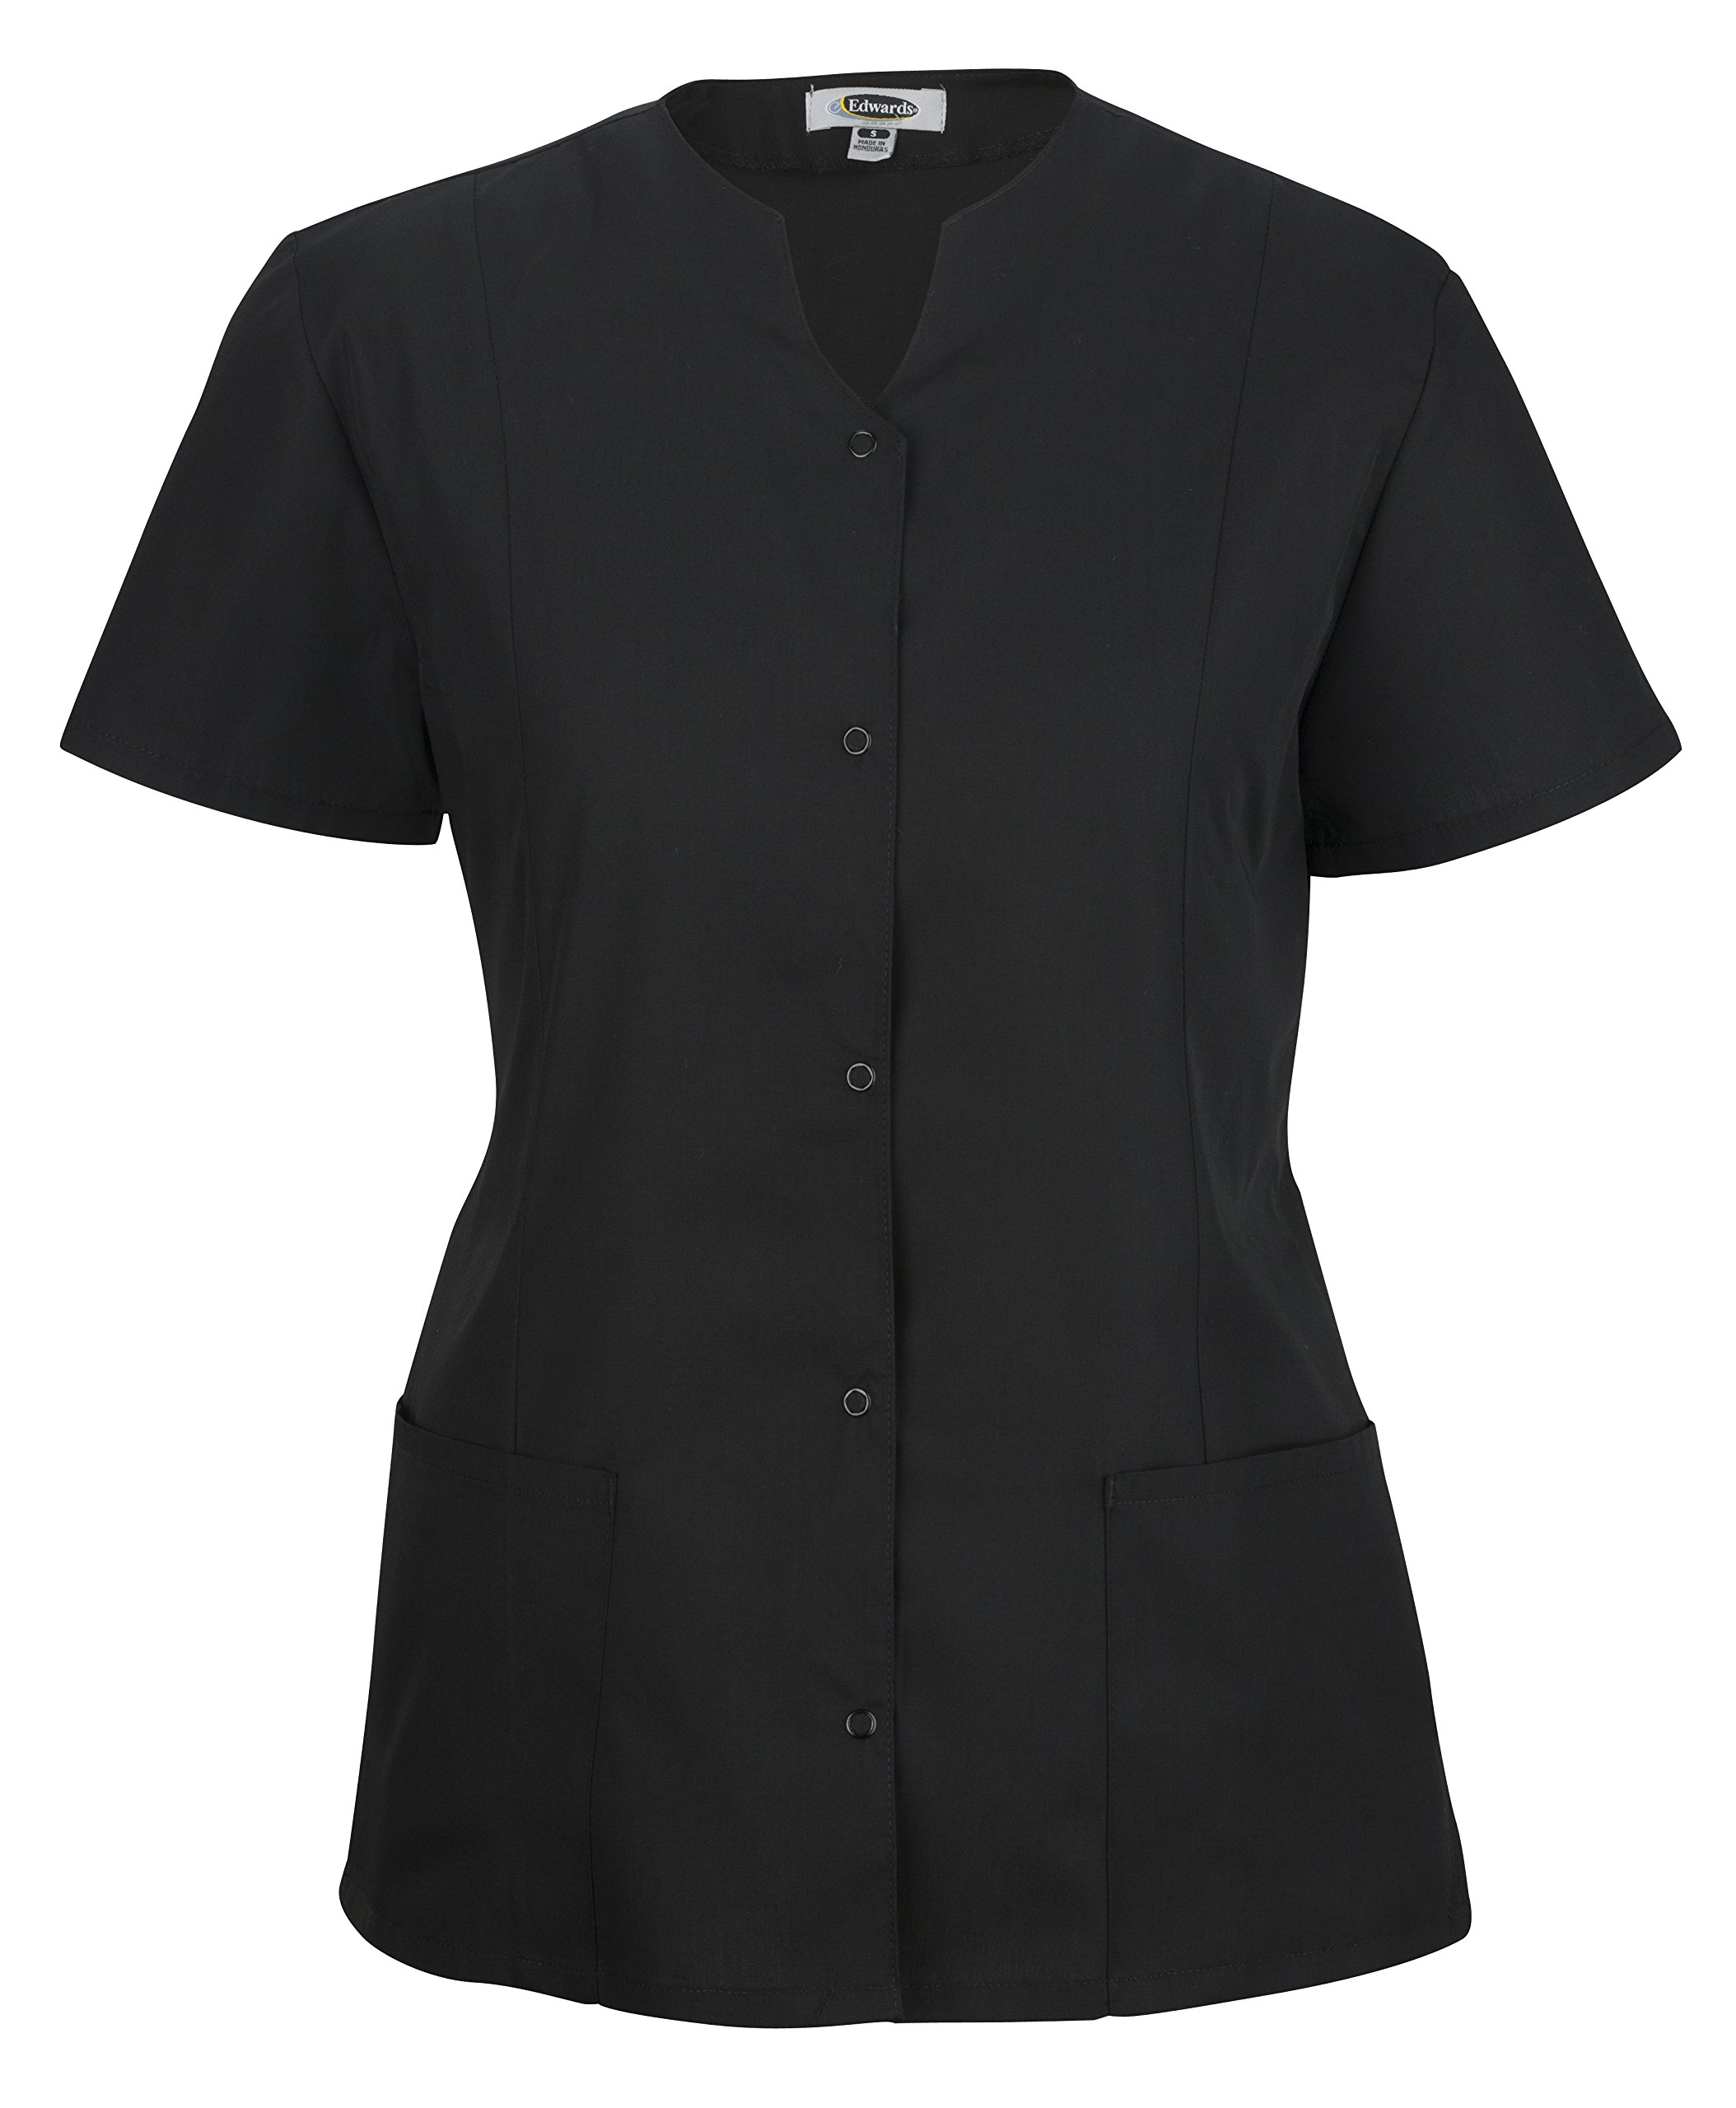 Averill's Sharper Uniforms Women's Ladies Extreme Housekeeping Snap Front Tunic with Two Pockets